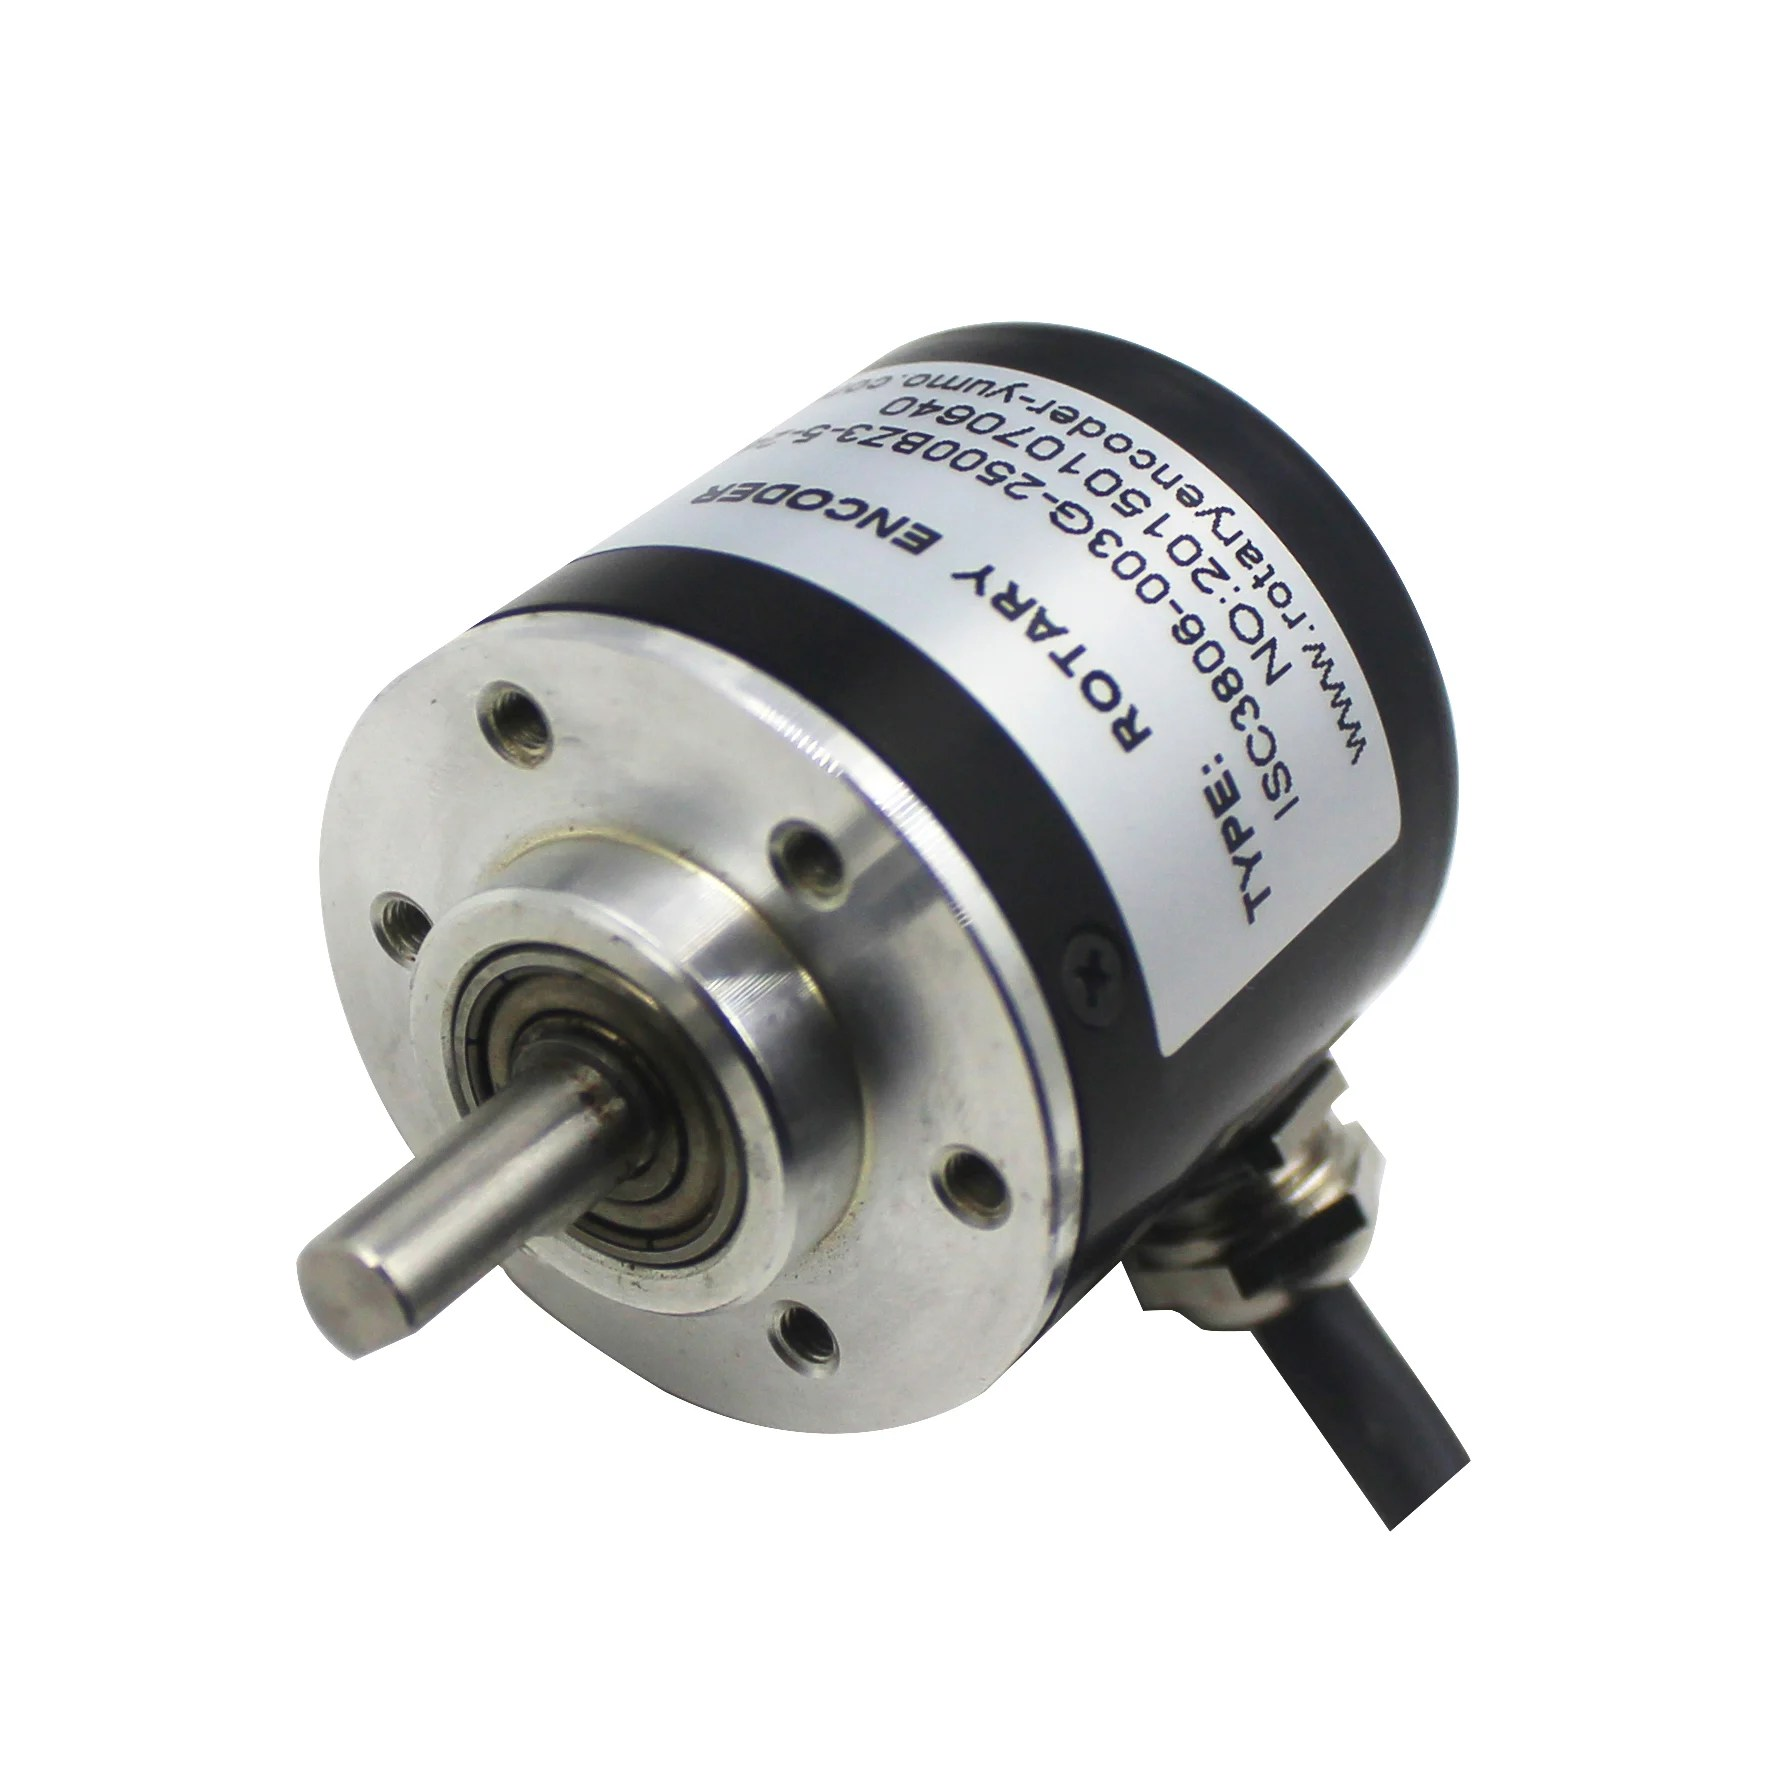 hight resolution of how to run rotary encoder arduino with code